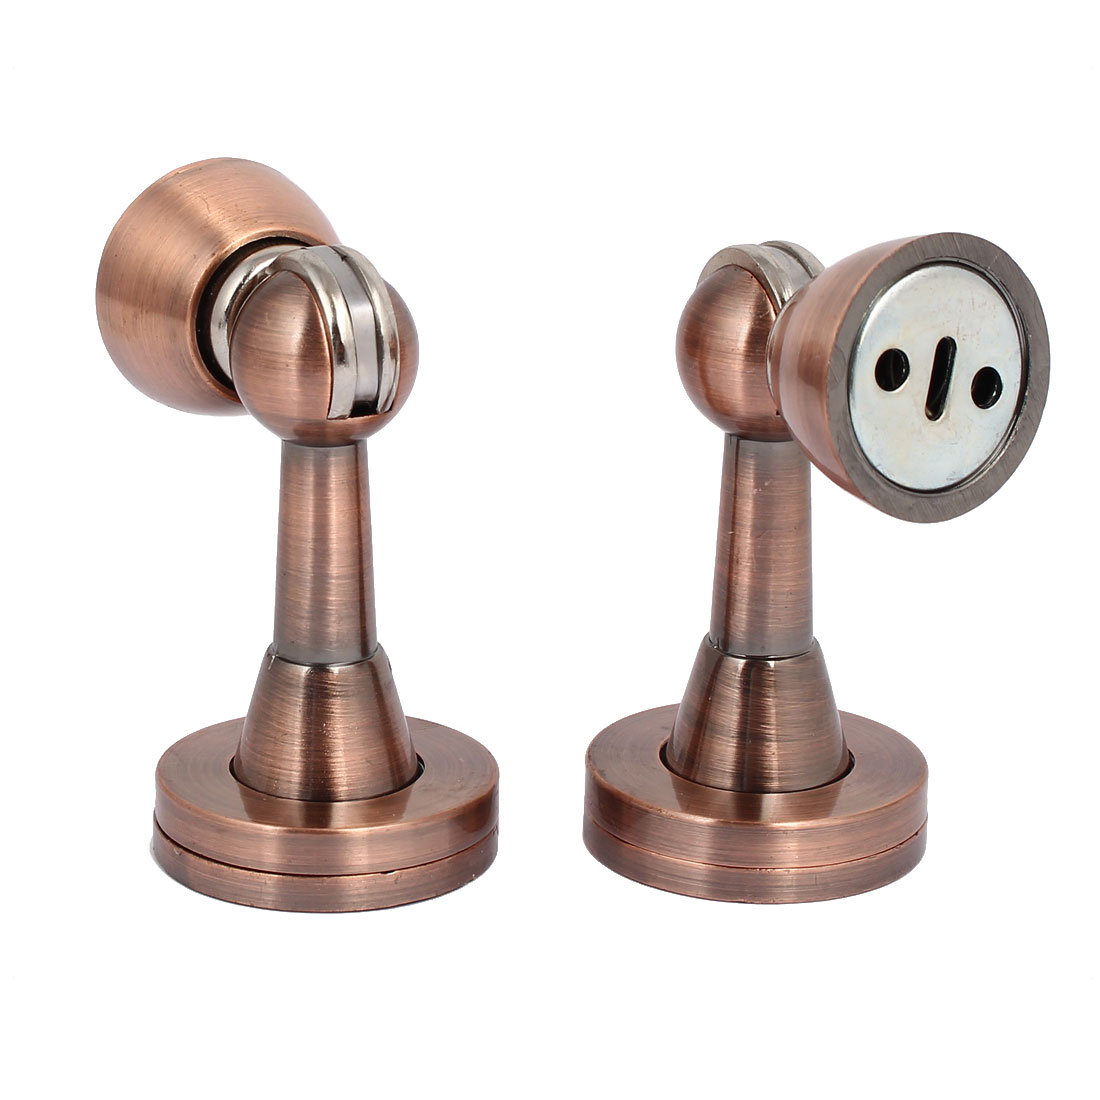 Home Office Door Metal Magnetic Catches Stopper Copper Tone 45mmx80mm 2pcs